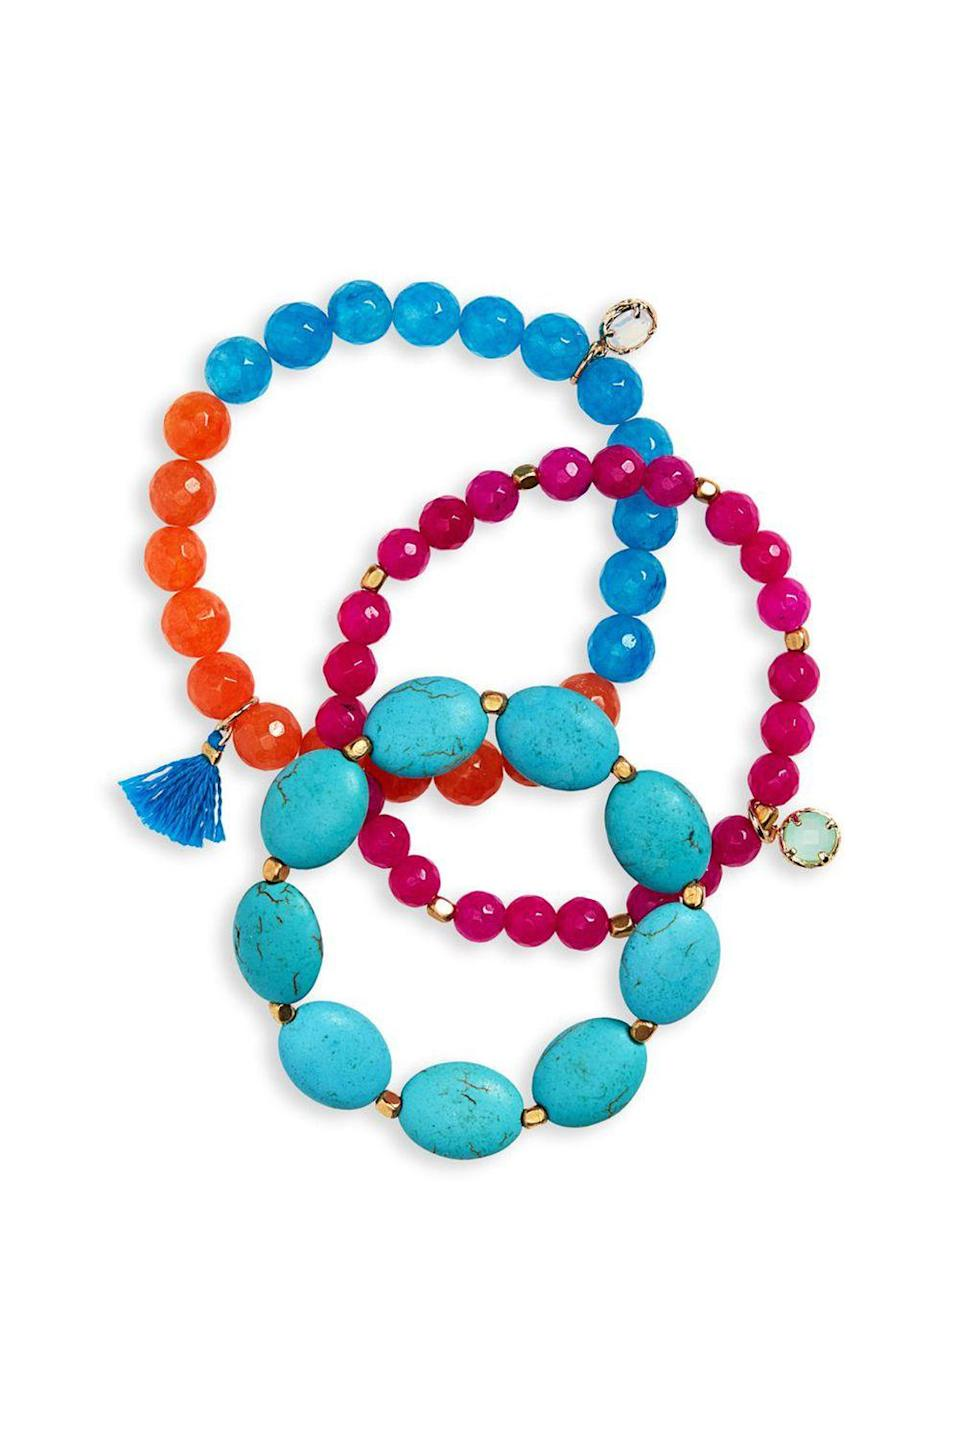 """<p><strong>Panacea</strong></p><p>nordstrom.com</p><p><strong>$34.00</strong></p><p><a href=""""https://shop.nordstrom.com/s/panacea-set-of-3-stretch-bracelets/5140847"""" rel=""""nofollow noopener"""" target=""""_blank"""" data-ylk=""""slk:SHOP IT"""" class=""""link rapid-noclick-resp"""">SHOP IT</a></p><p>To highlight your sun-kissed skin even more, slip on this set of warm teal and orange hued bracelets this summer. When worn separately, they're an easy way to add rainbow pieces to your collection. When worn together it's a full-on arm party. </p>"""